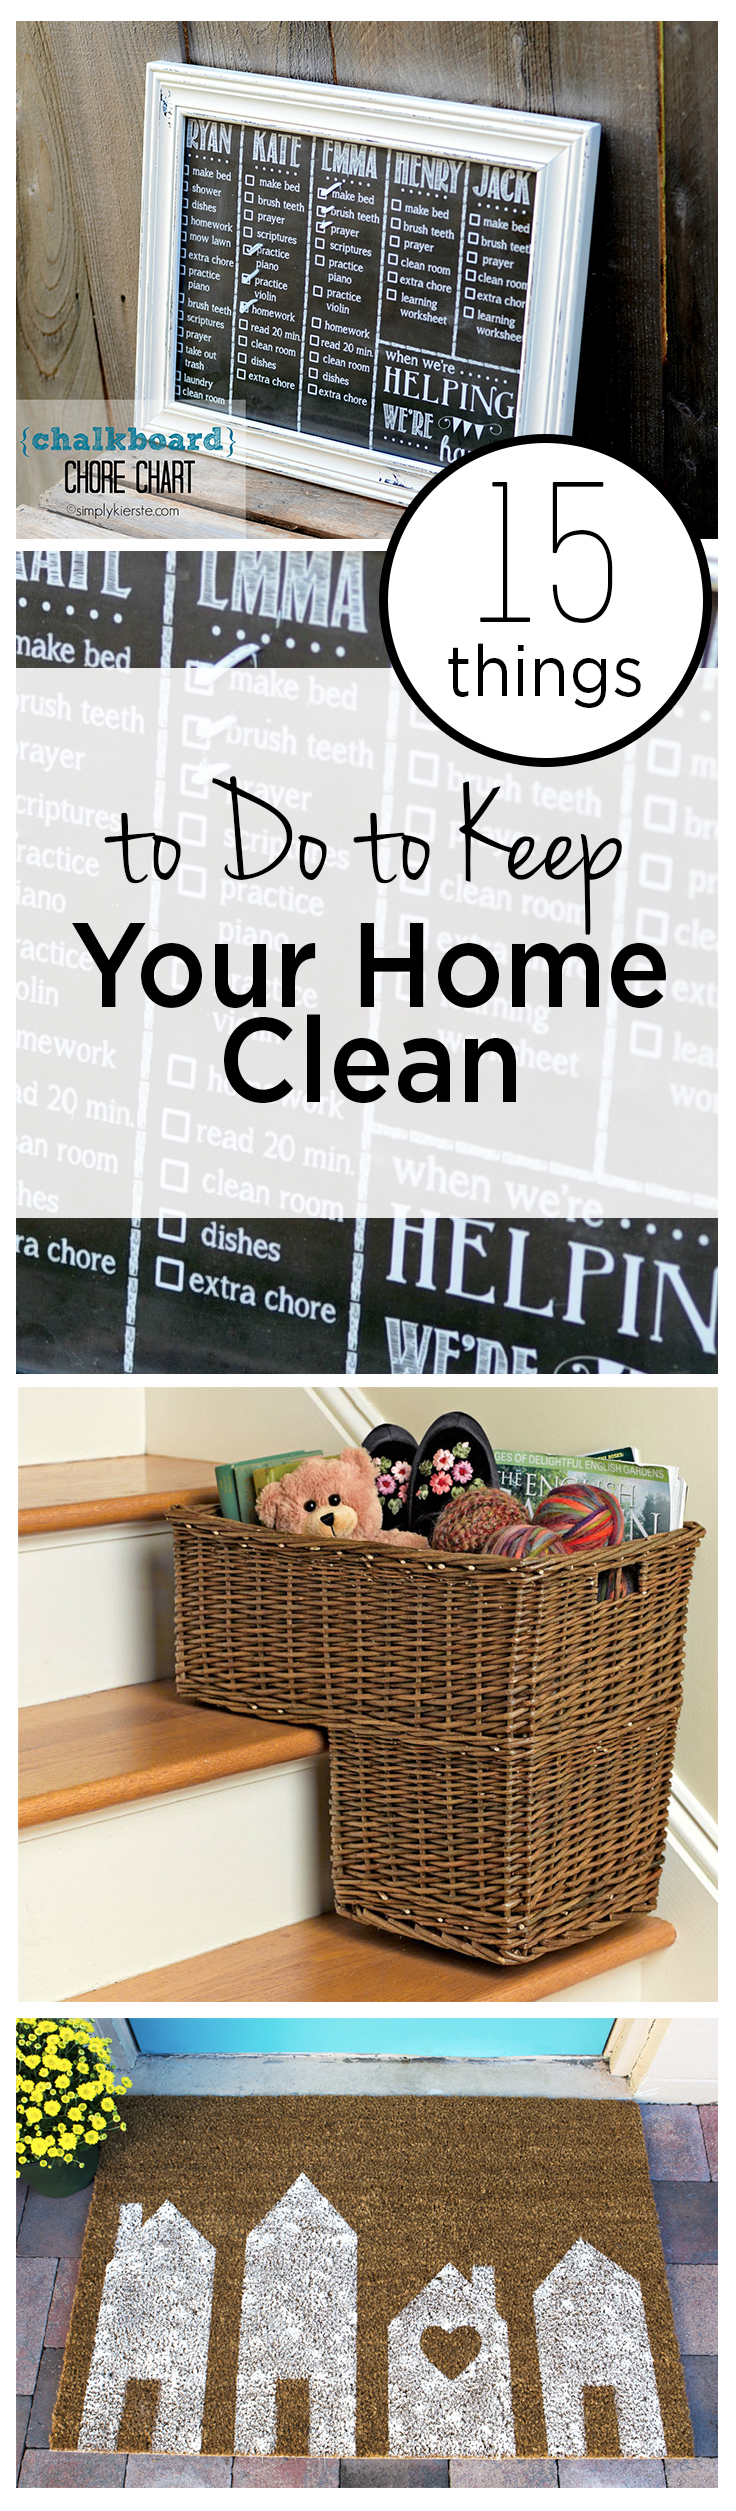 15-things-to-do-to-keep-your-home-clean